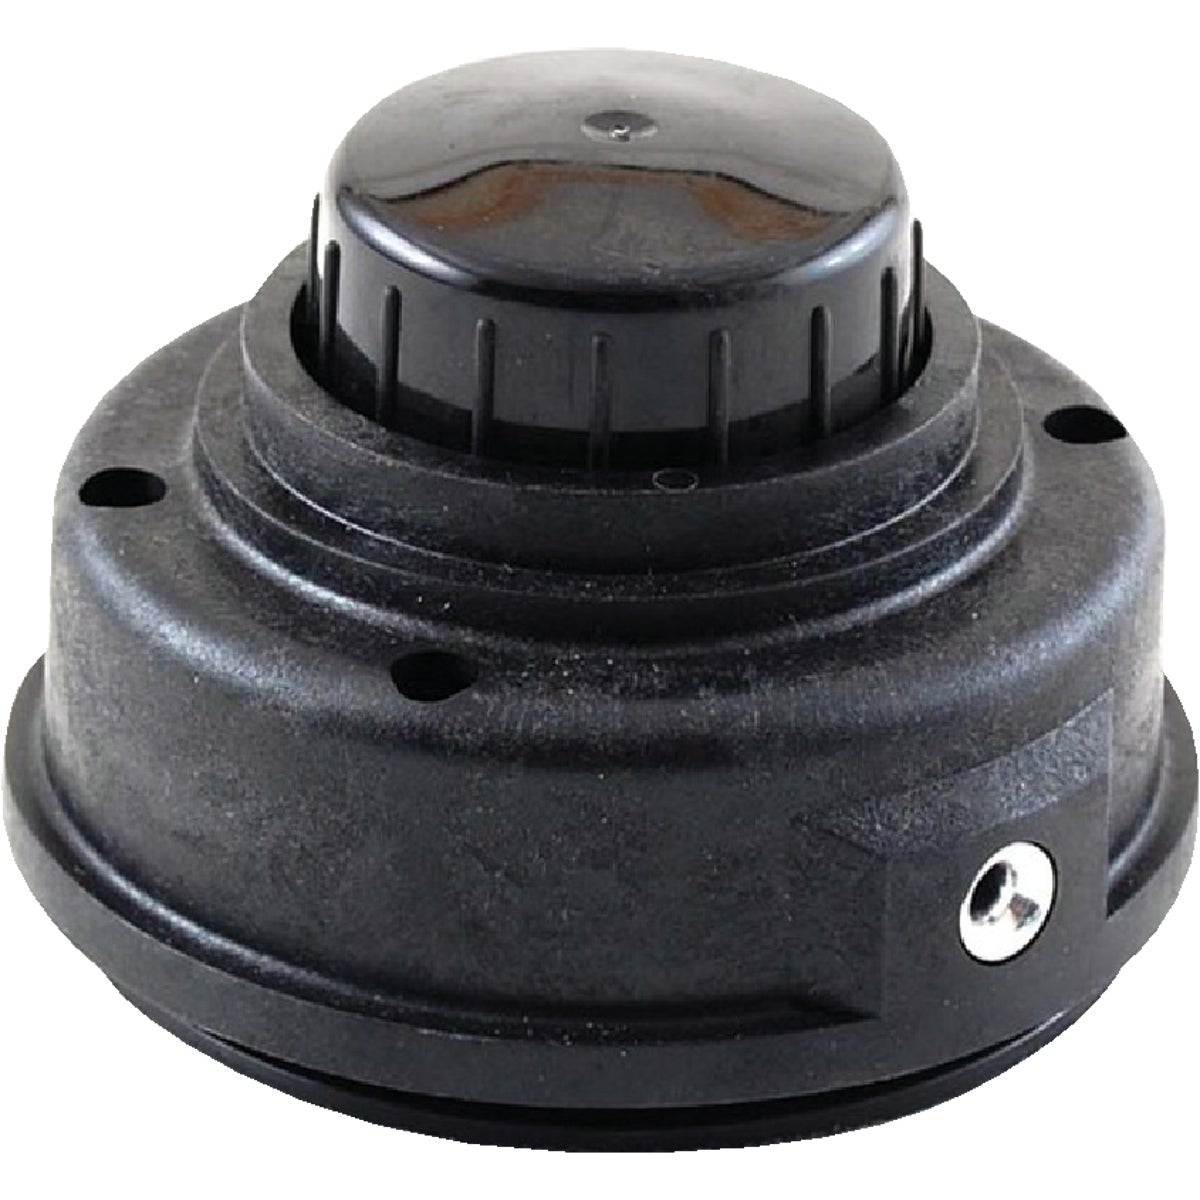 Homelite Fixed Feed Curved Shaft Replacement Trimmer Head, 490-060-0006